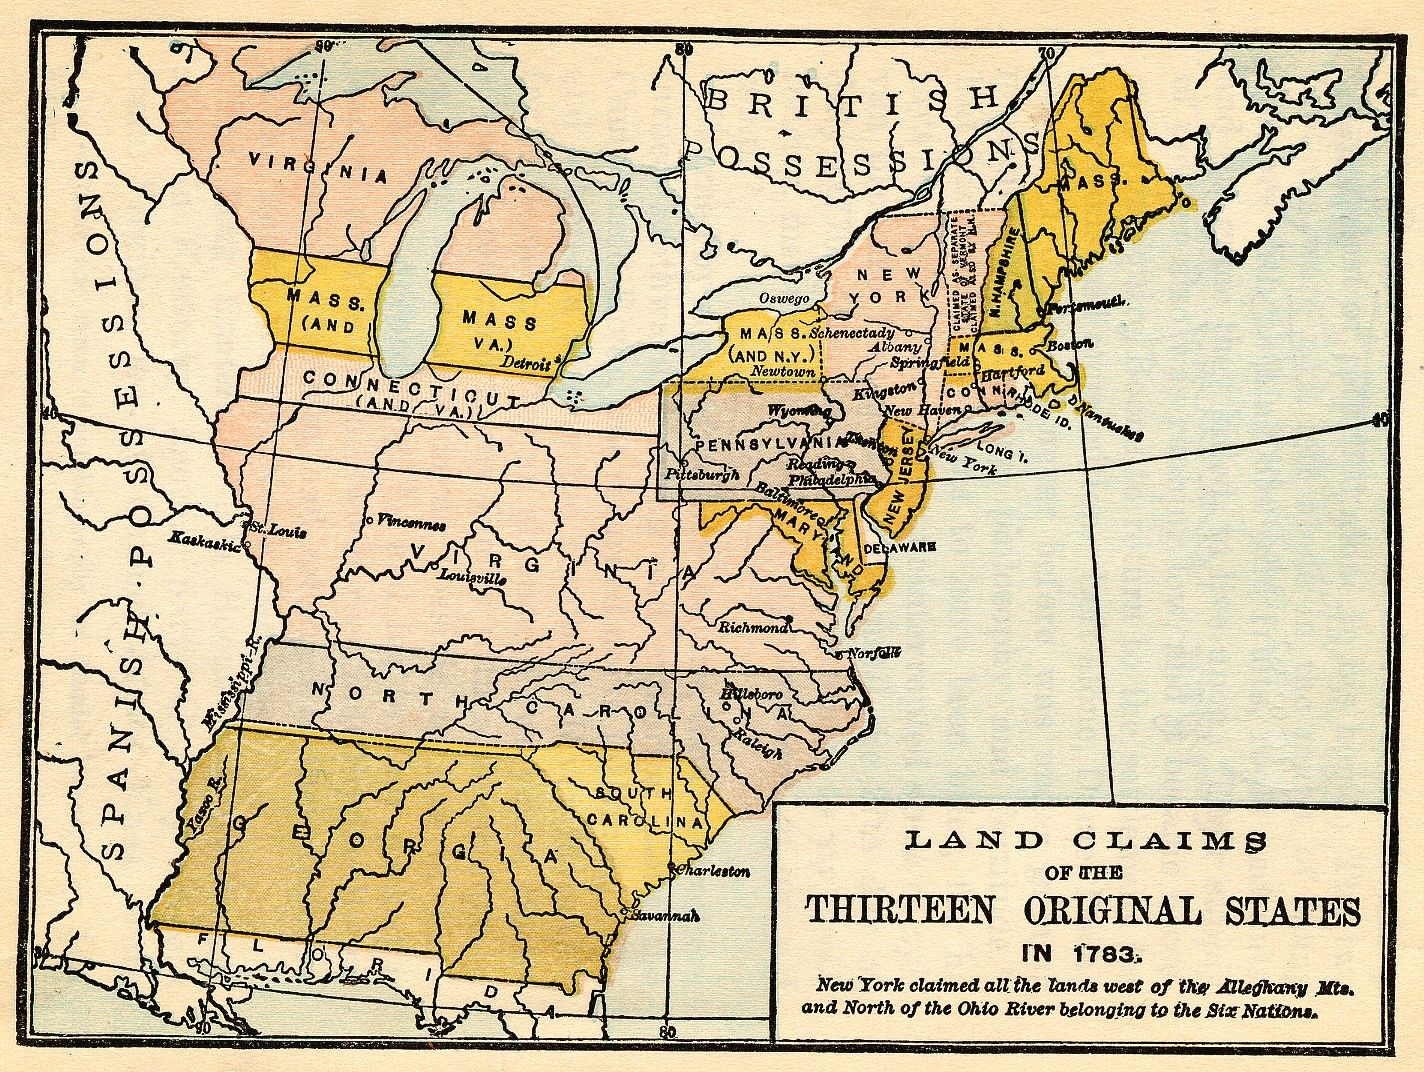 Original 13 Colonies Coloring Page Outline Onlyno Words. 13 ...